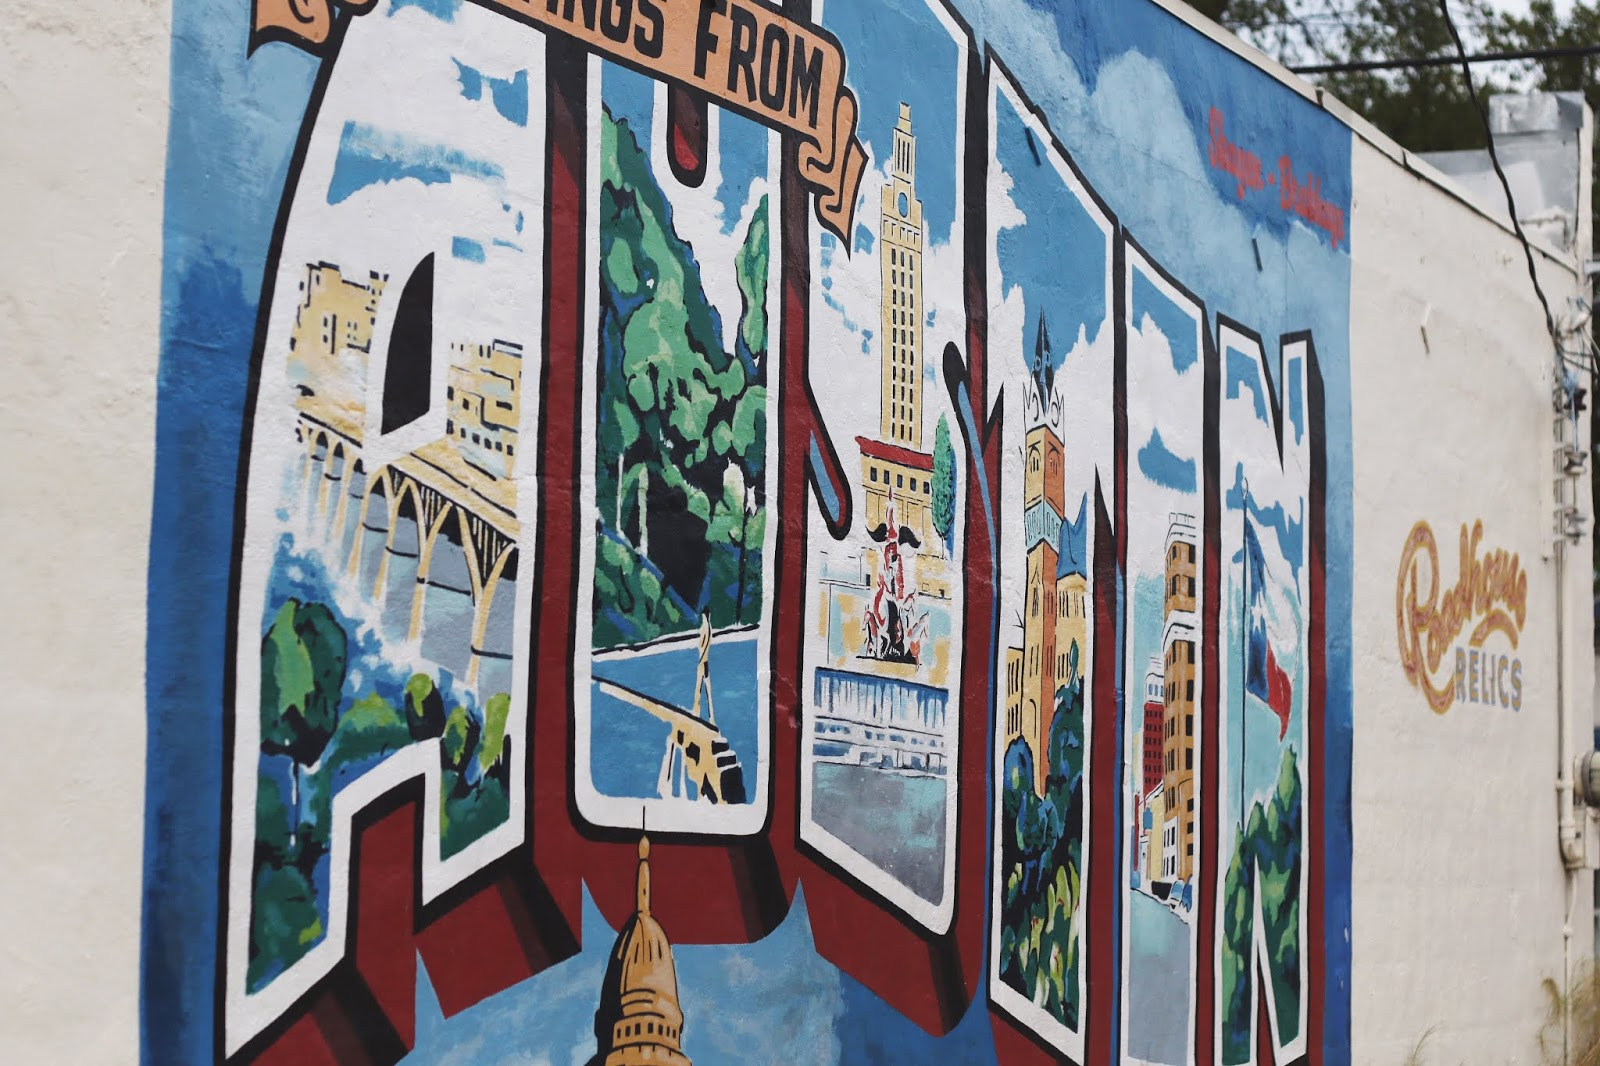 greeting from austin mural, greetings from austin mural address, best murals in austin, where to take photos in austin